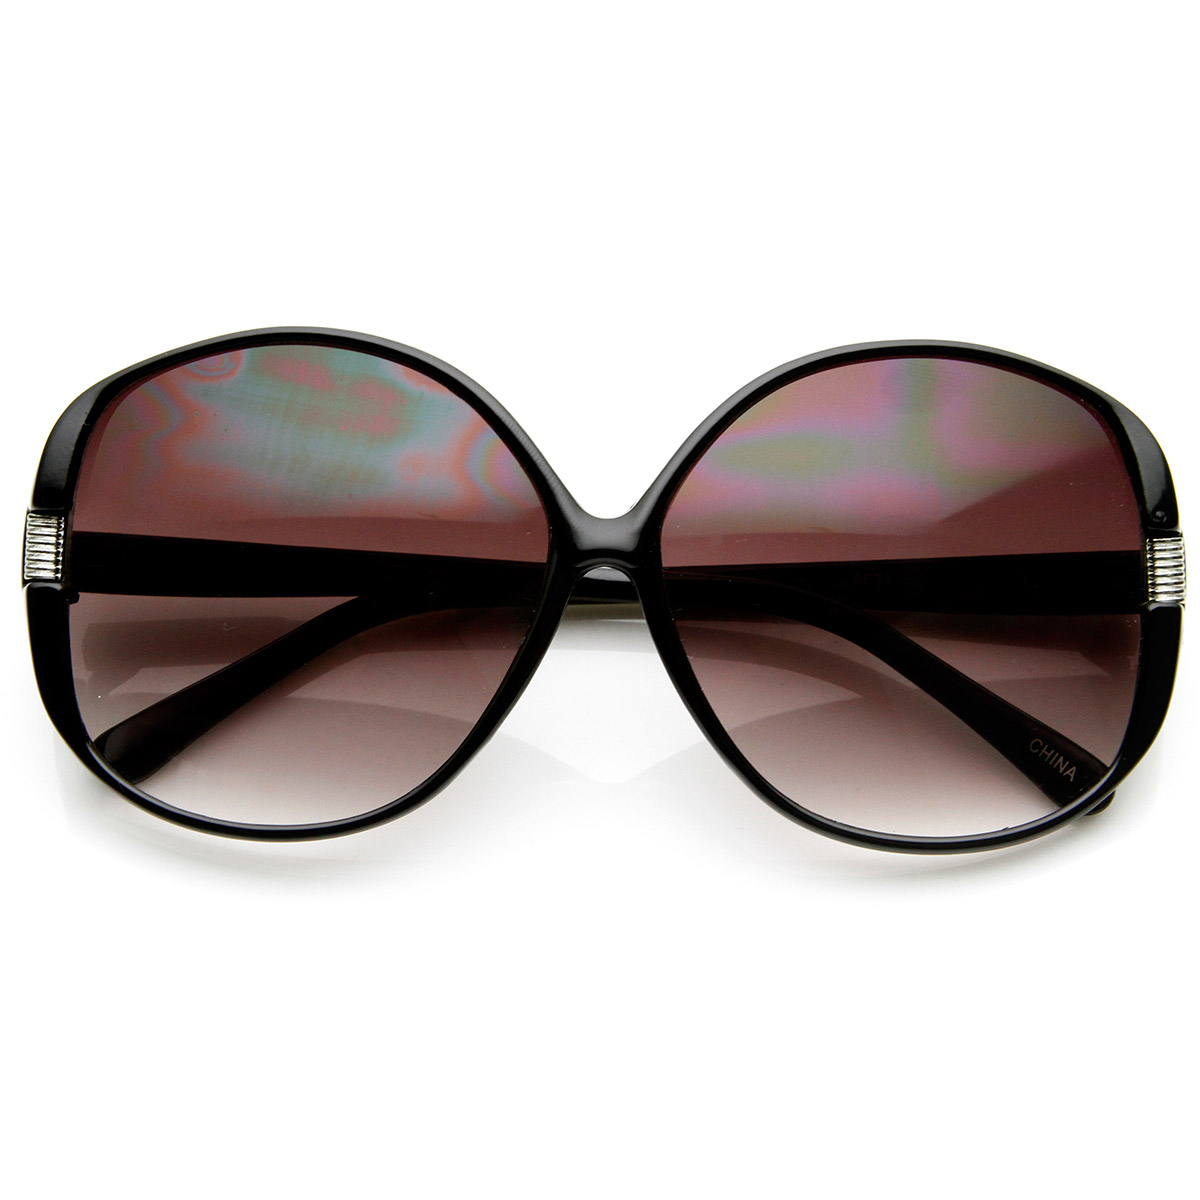 Womens Fashion Metal Accent Round Oversized Sunglasses Ebay